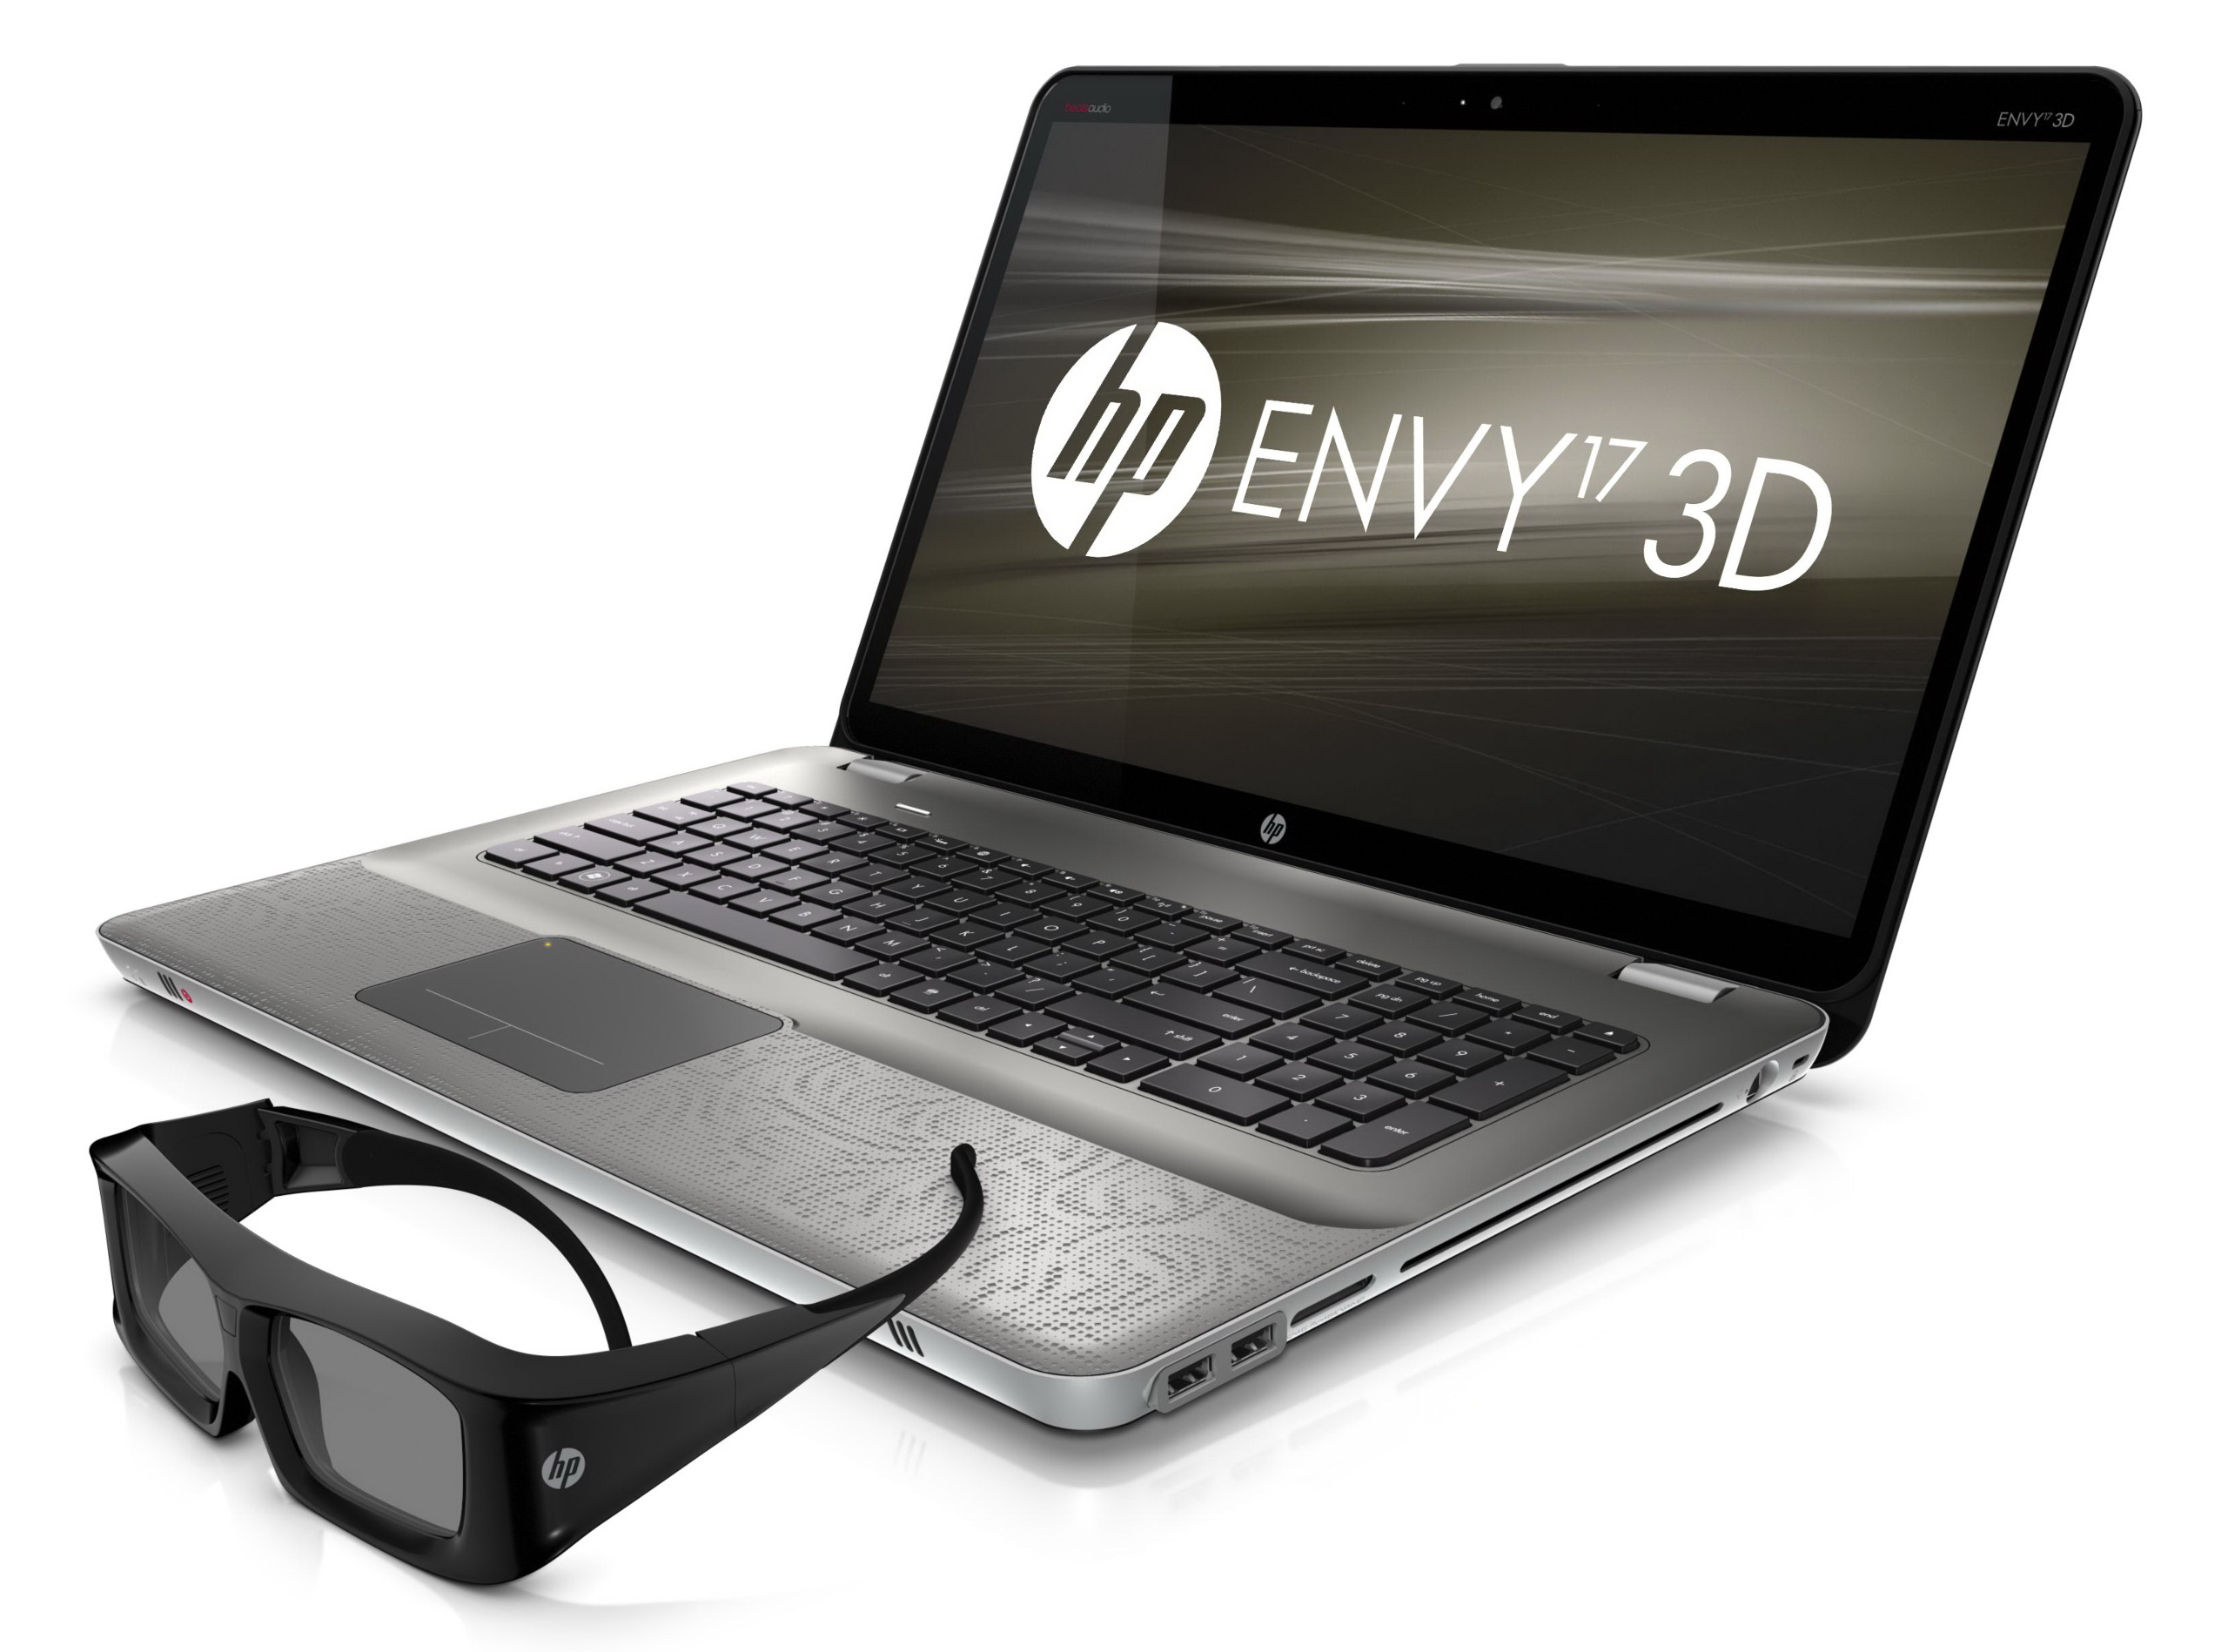 Review of the HP Envy 17 3D Laptop for Stereoscopic 3D Use  3D Vision